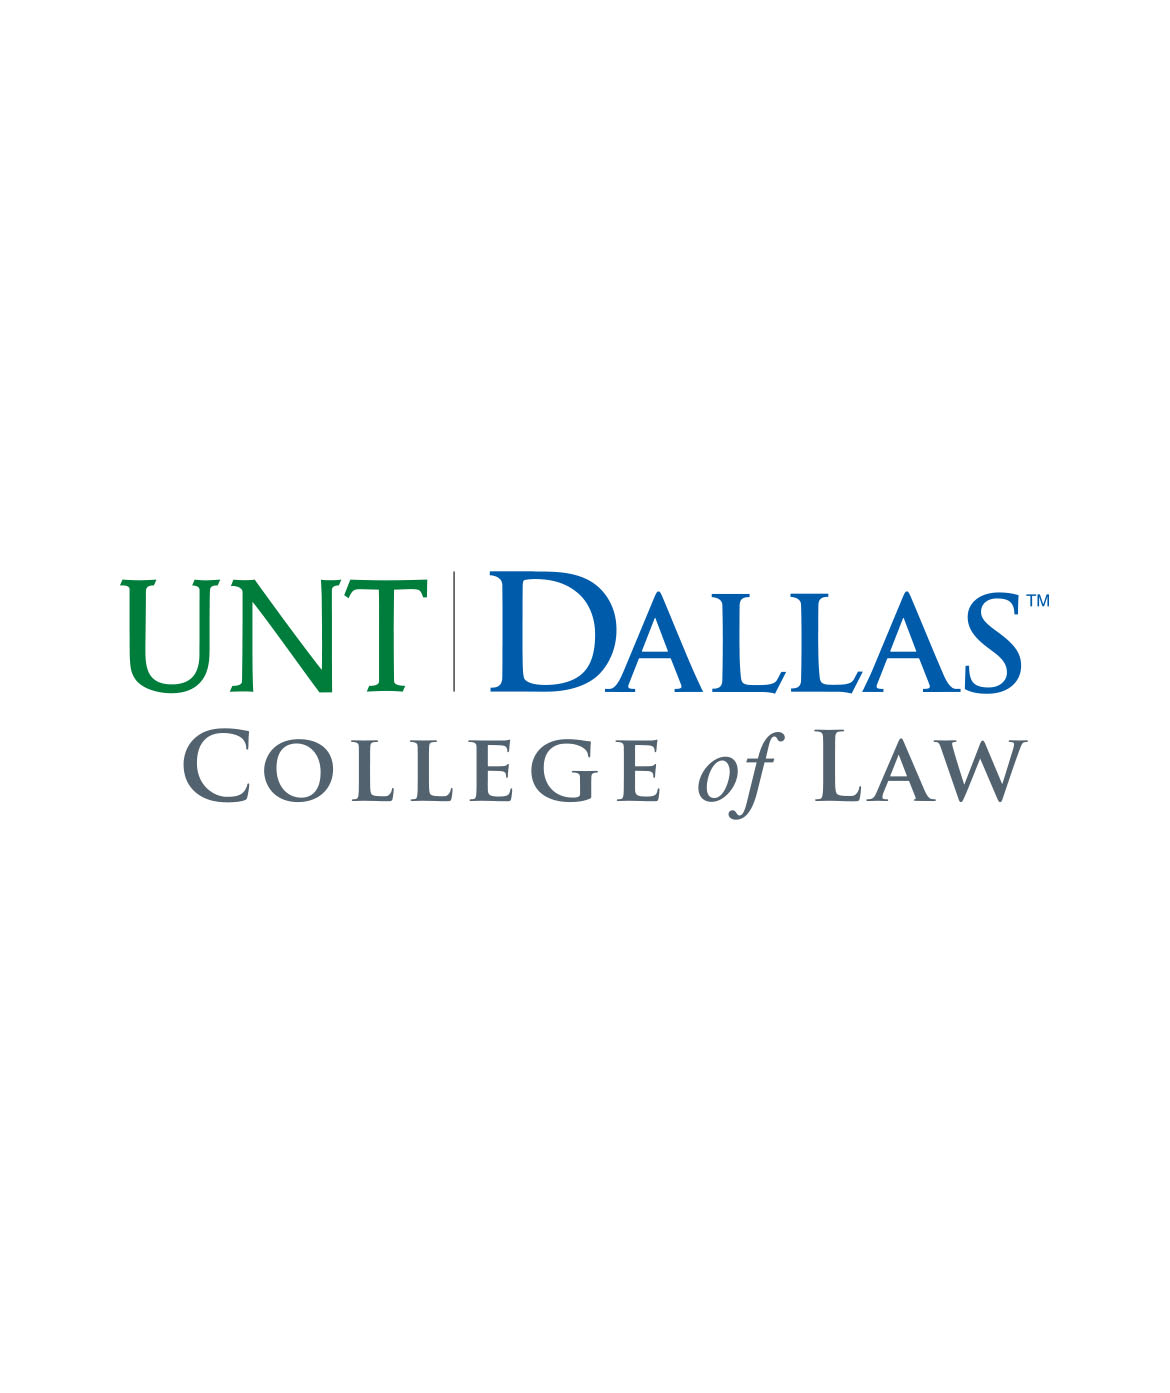 client-experience-unt-college-of-law-1.jpg